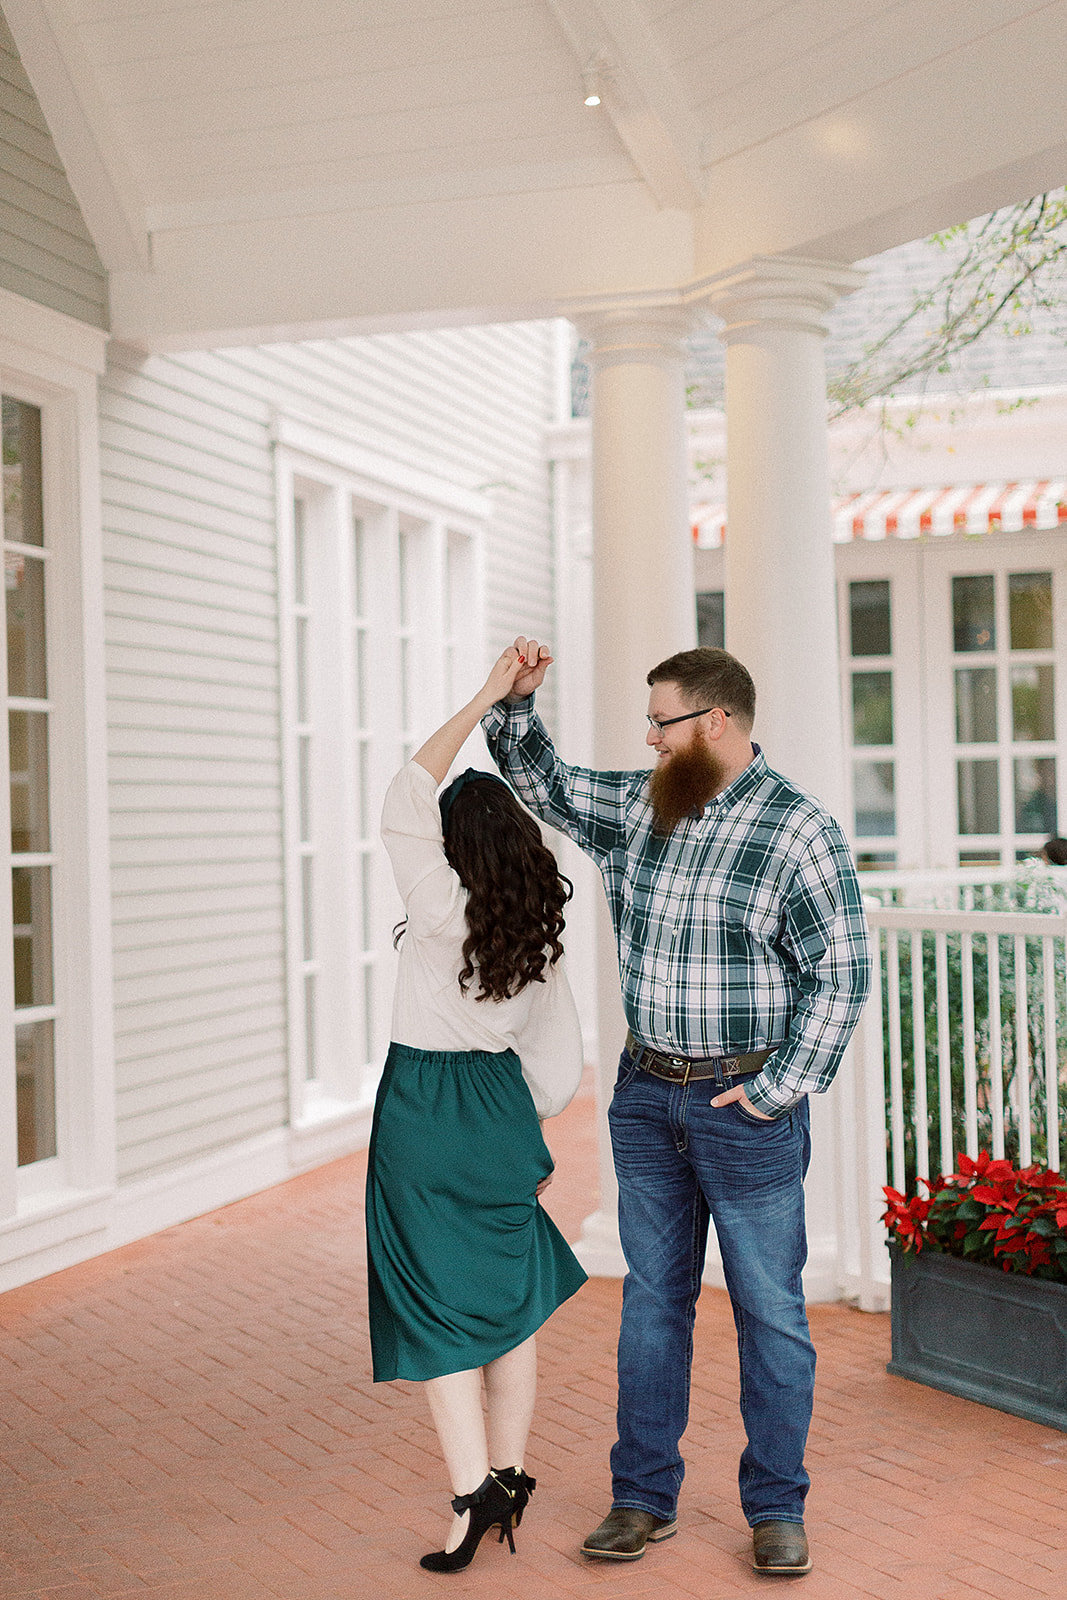 Cassidy_+_Kylor_Proposal_at_Disney_s_Beach_Club_Resort_Photographer_Casie_Marie_Photography-65